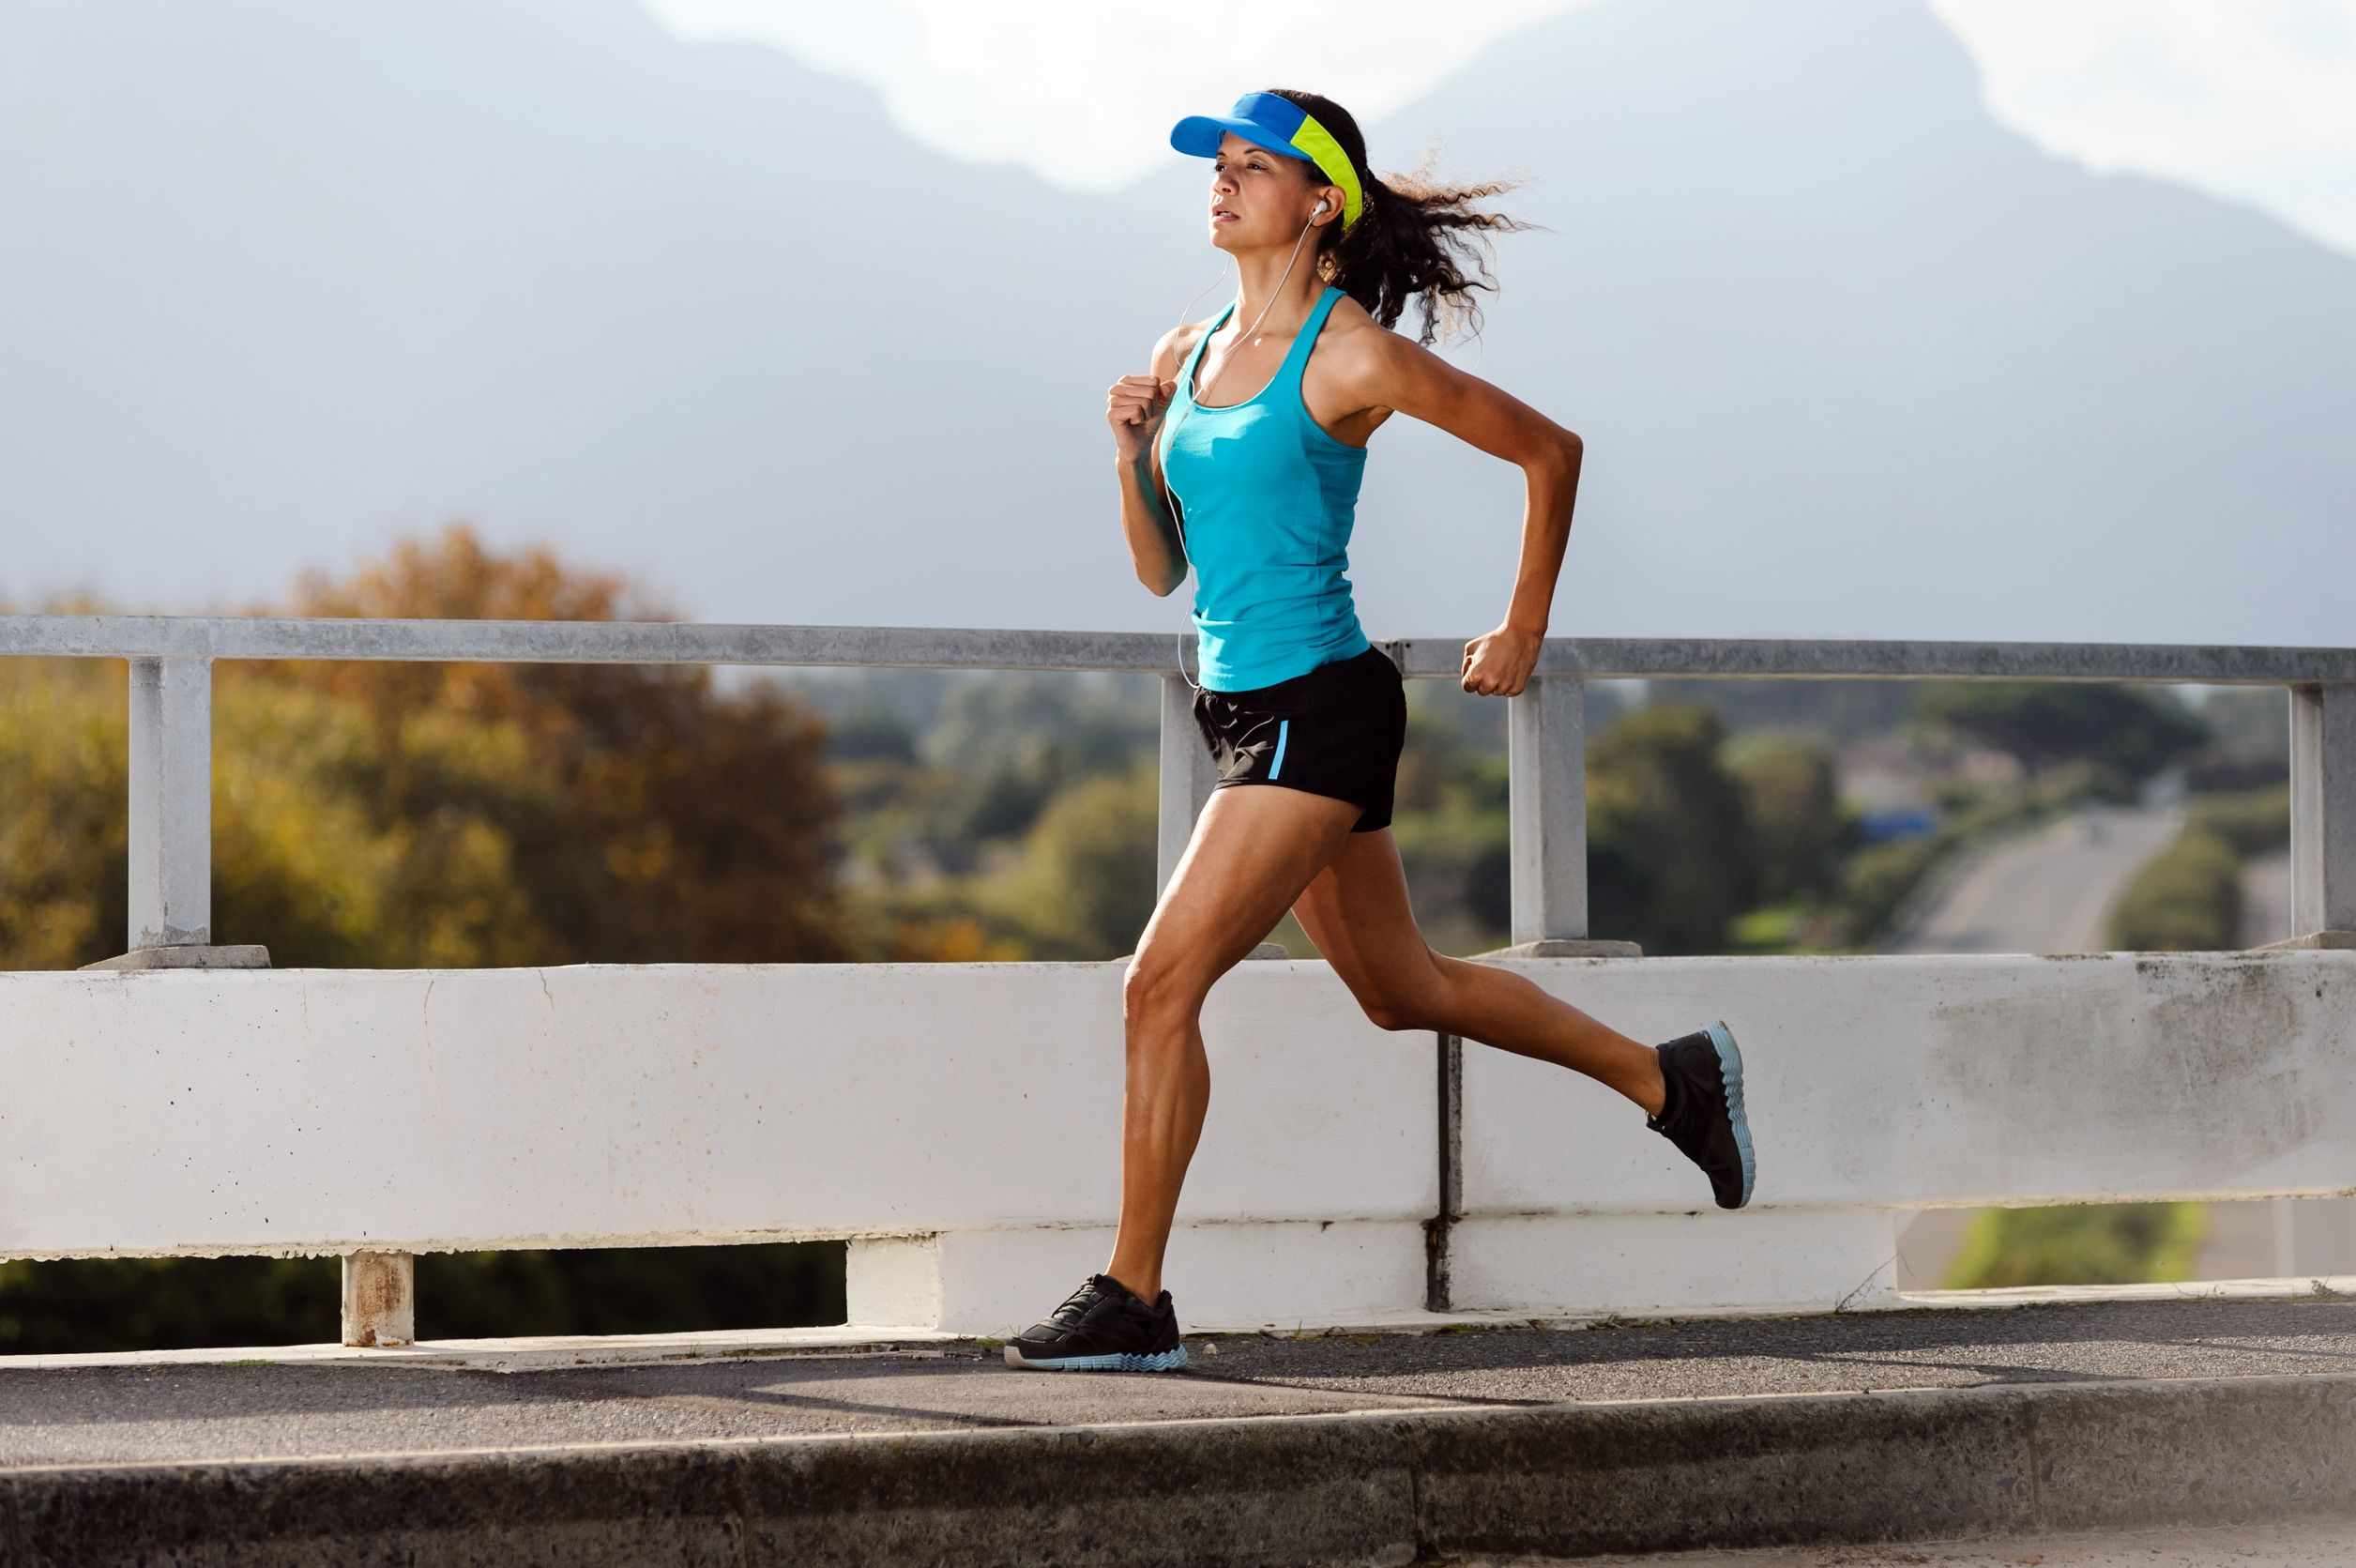 Athlete running on bridge. action shot of runner in mid air. healthy lifestyle fitness woman